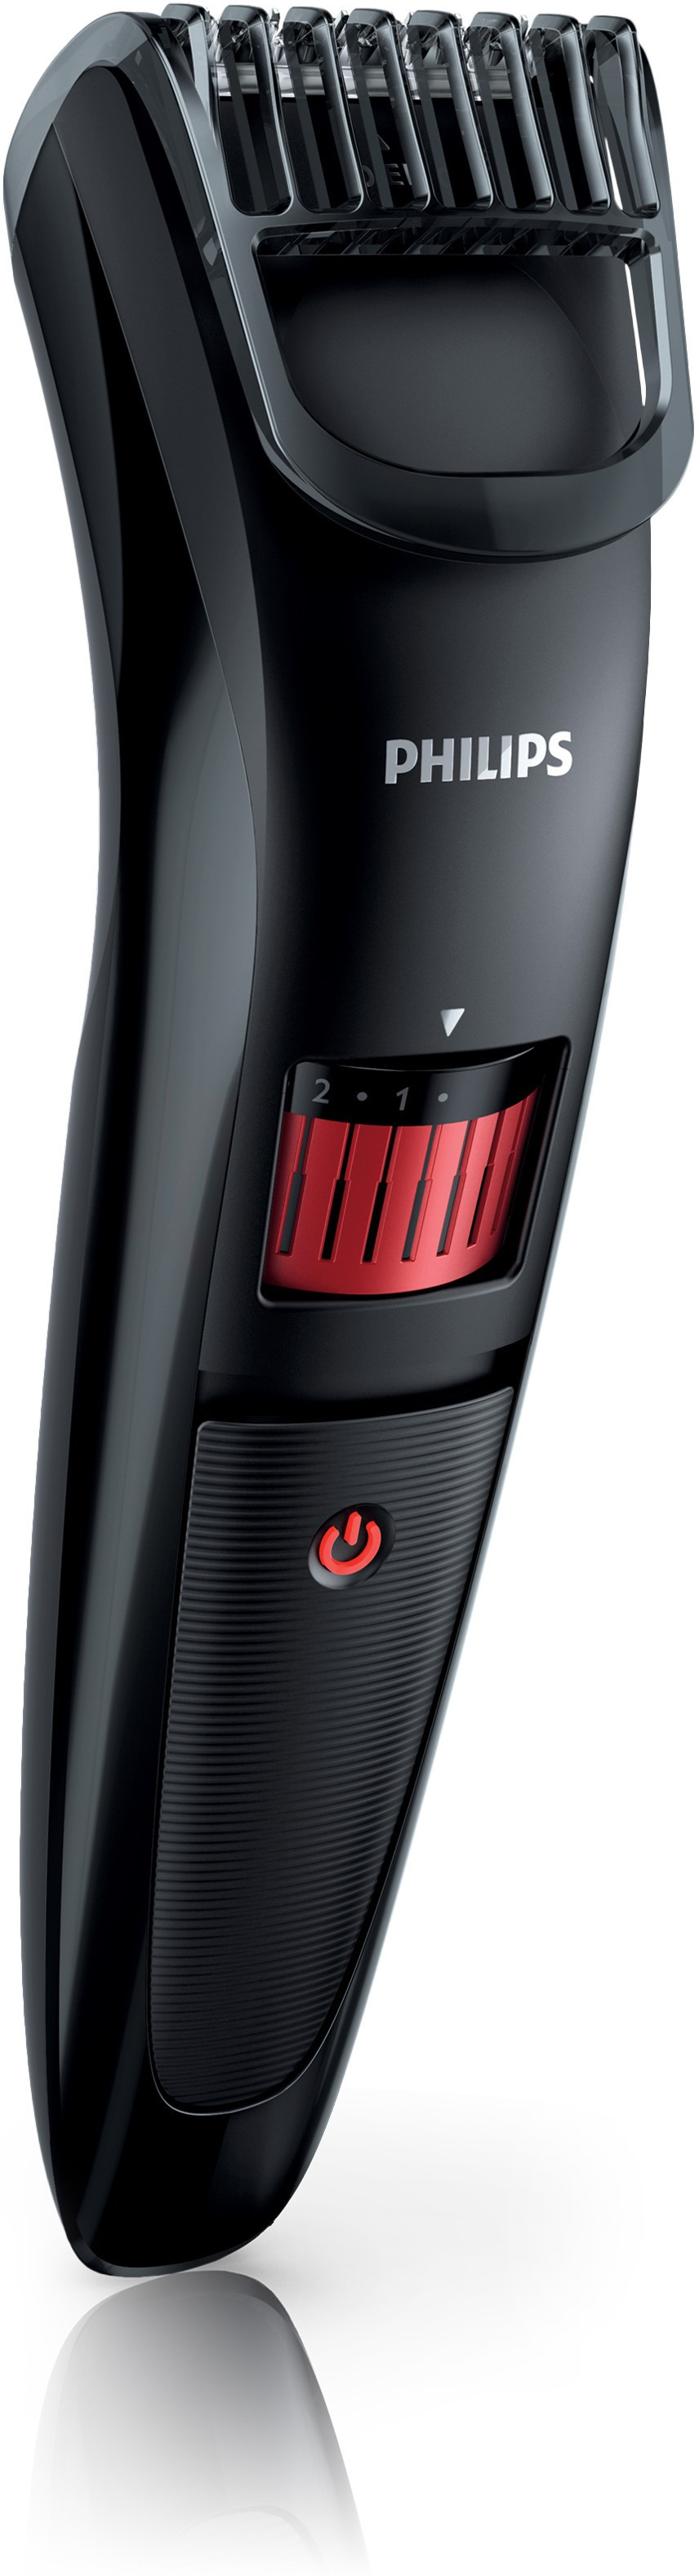 compare philips pro skin advanced qt4005 15 trimmer for men price online indi. Black Bedroom Furniture Sets. Home Design Ideas